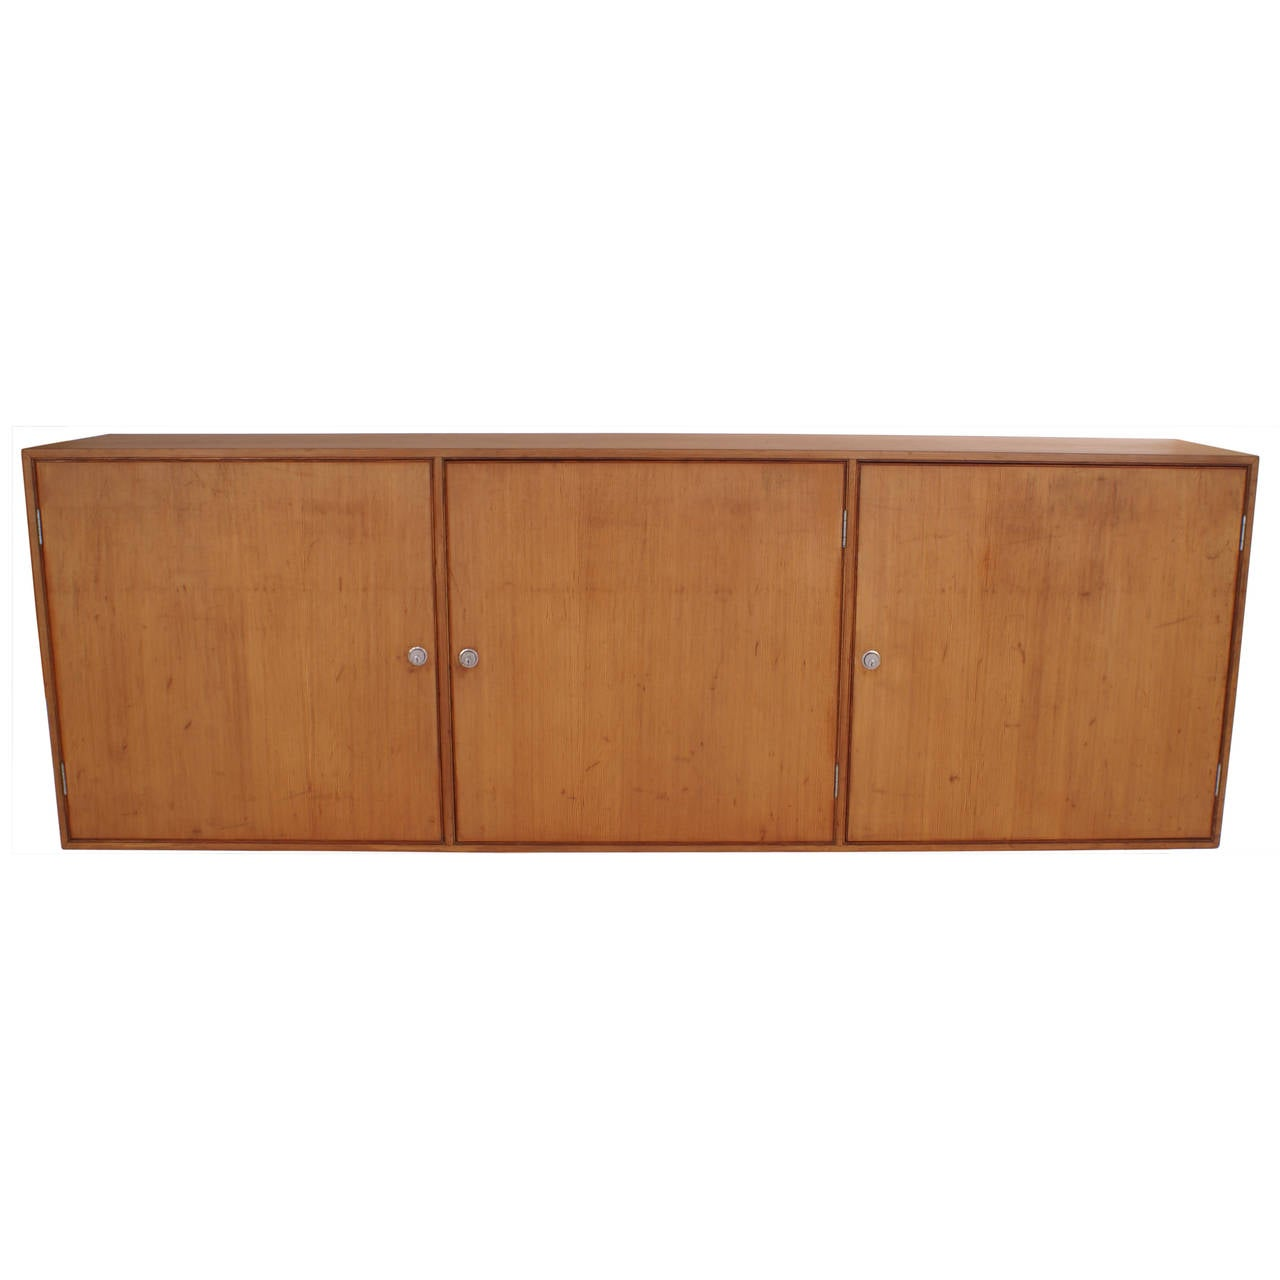 Wall Hanging Cabinet poul kjaerholm wall-hanging cabinet in oregon pine for ekc for